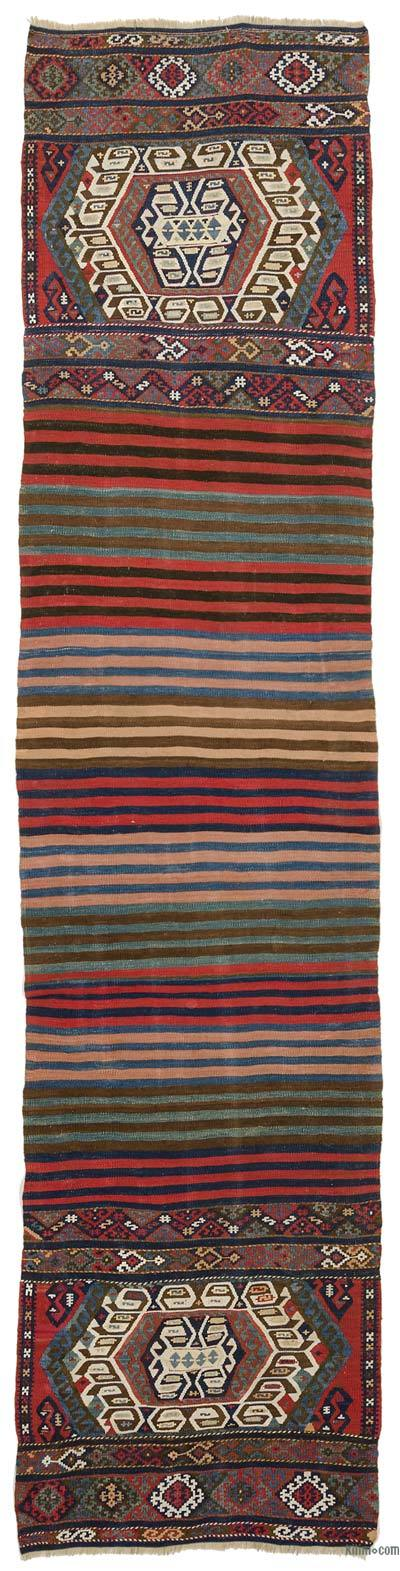 Multicolor Antique Malatya Kilim Runner